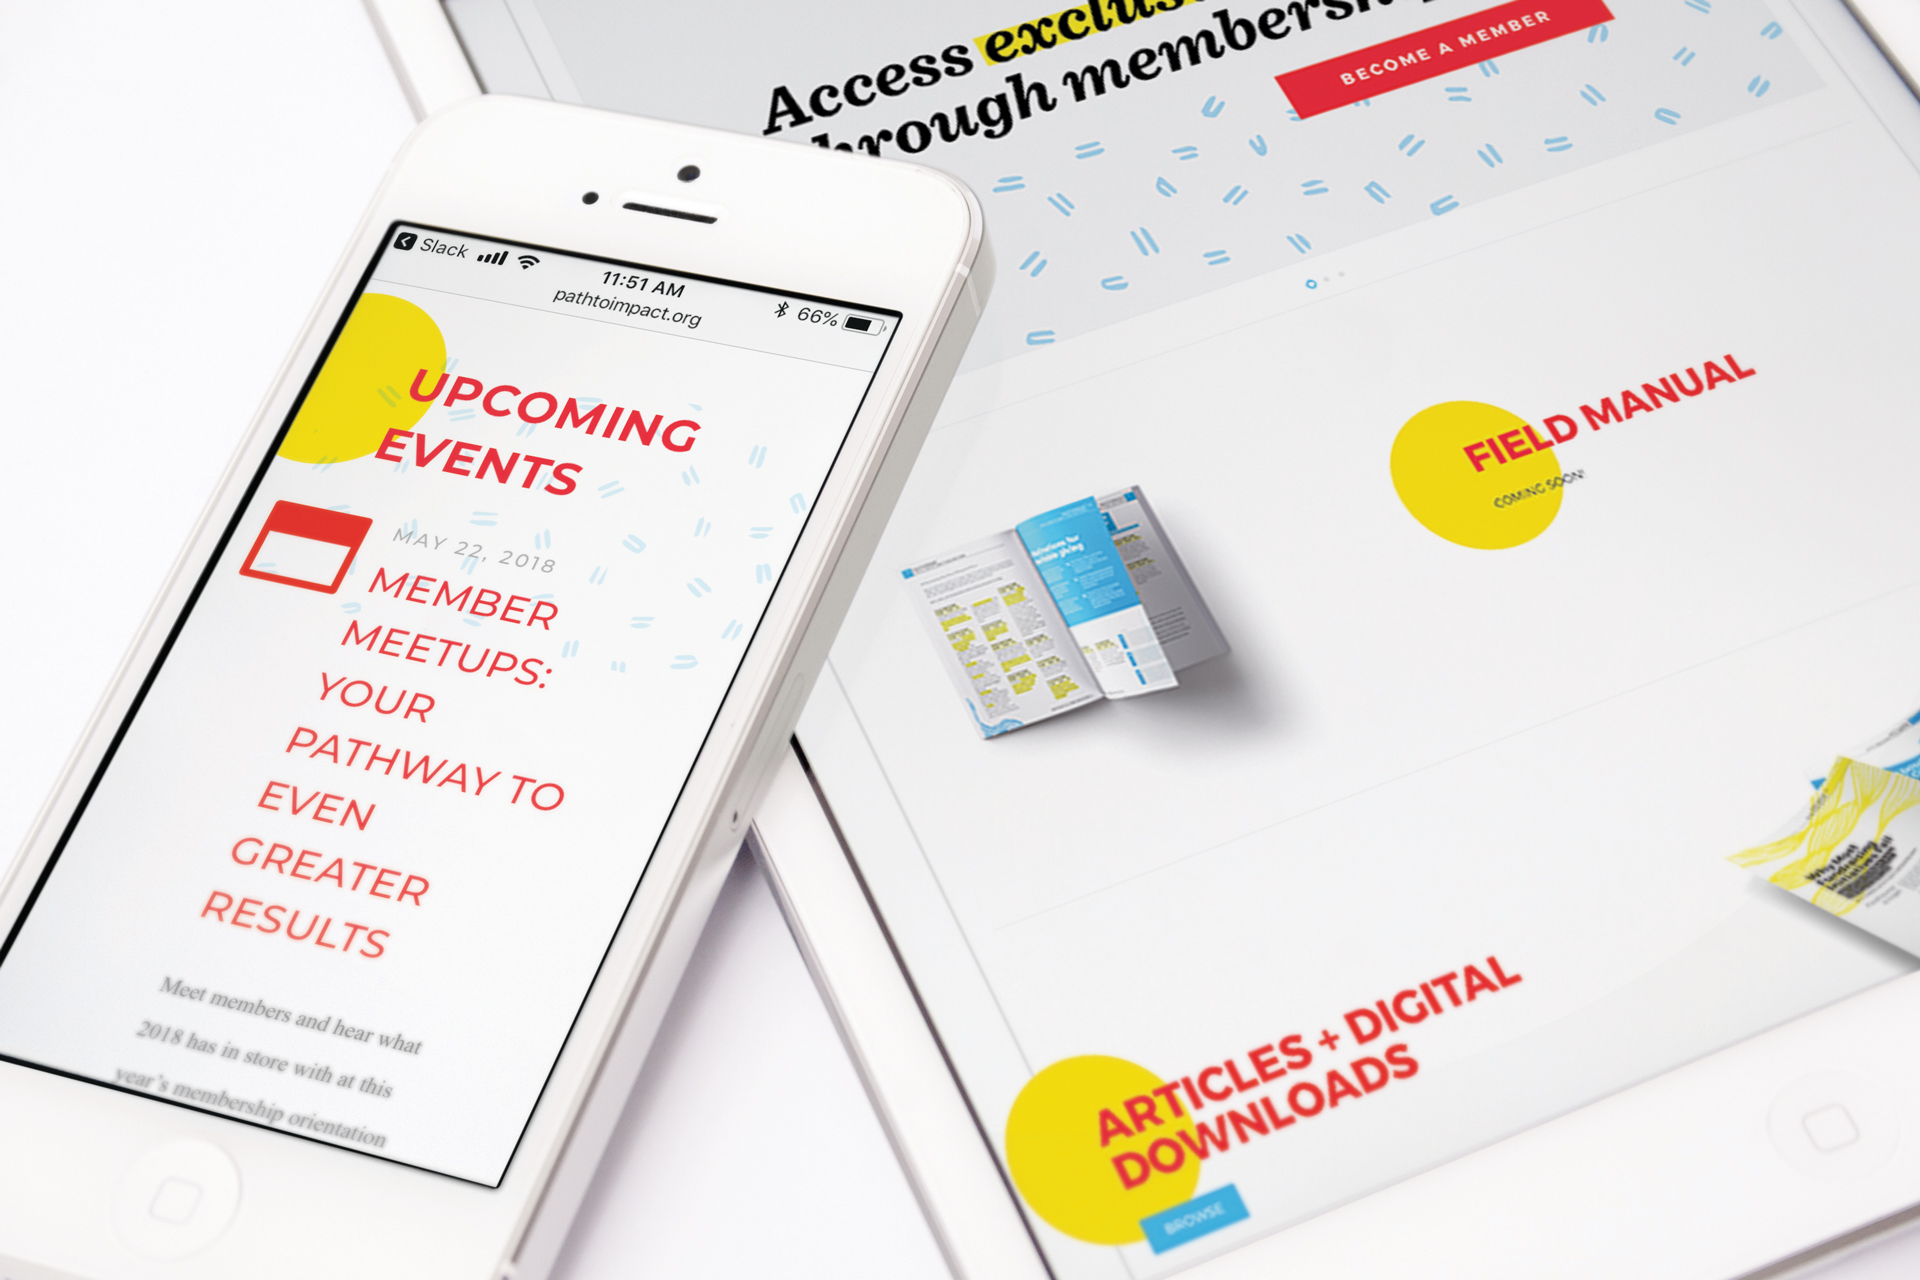 Mockup of iPhone and iPad displaying Impact Institute FundingLogic Shopify site